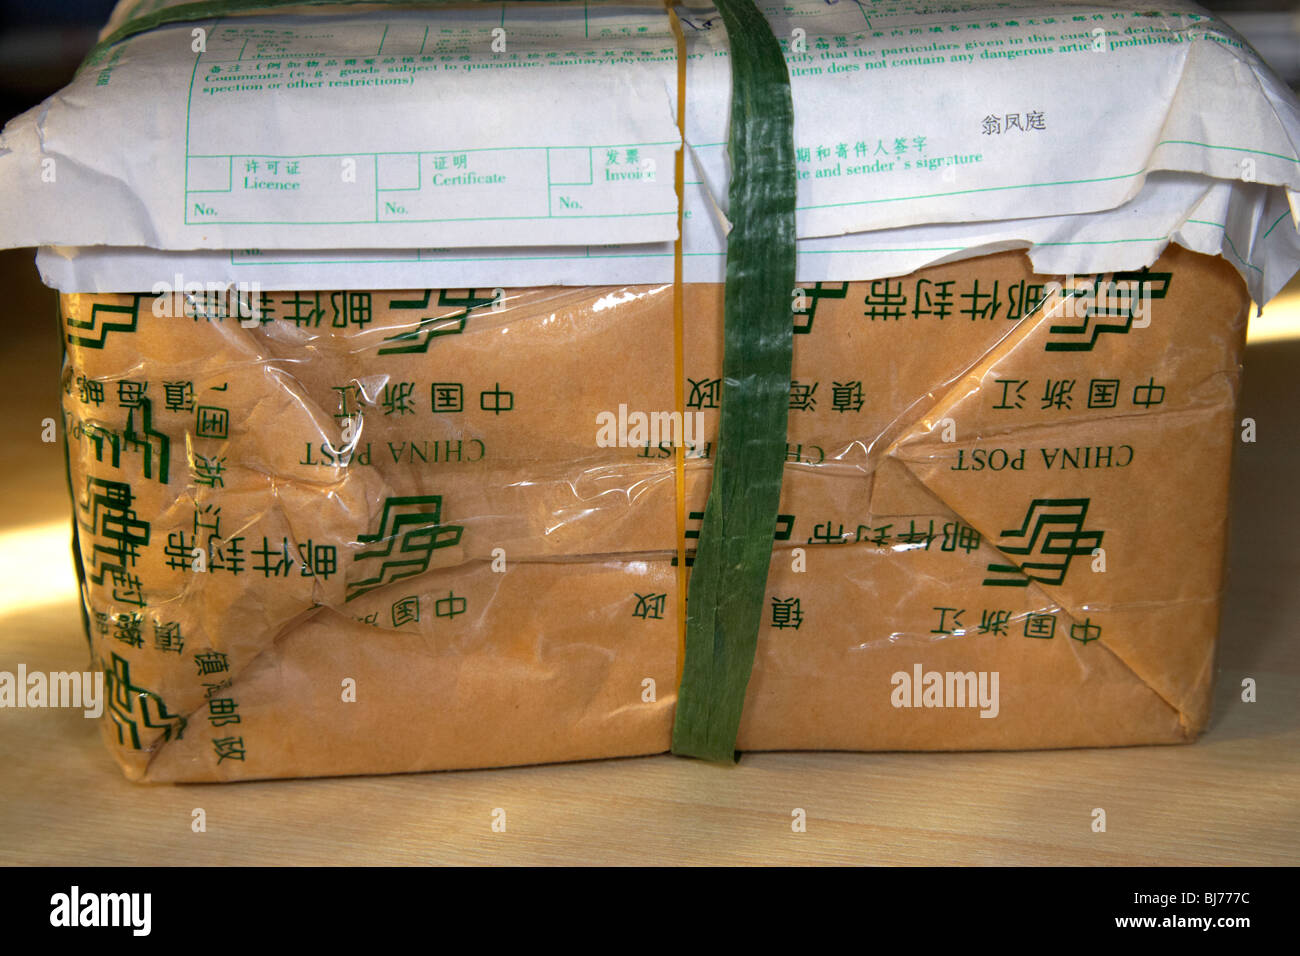 parcel sent from china received in the UK with chinese packaging and customs clearance form - Stock Image